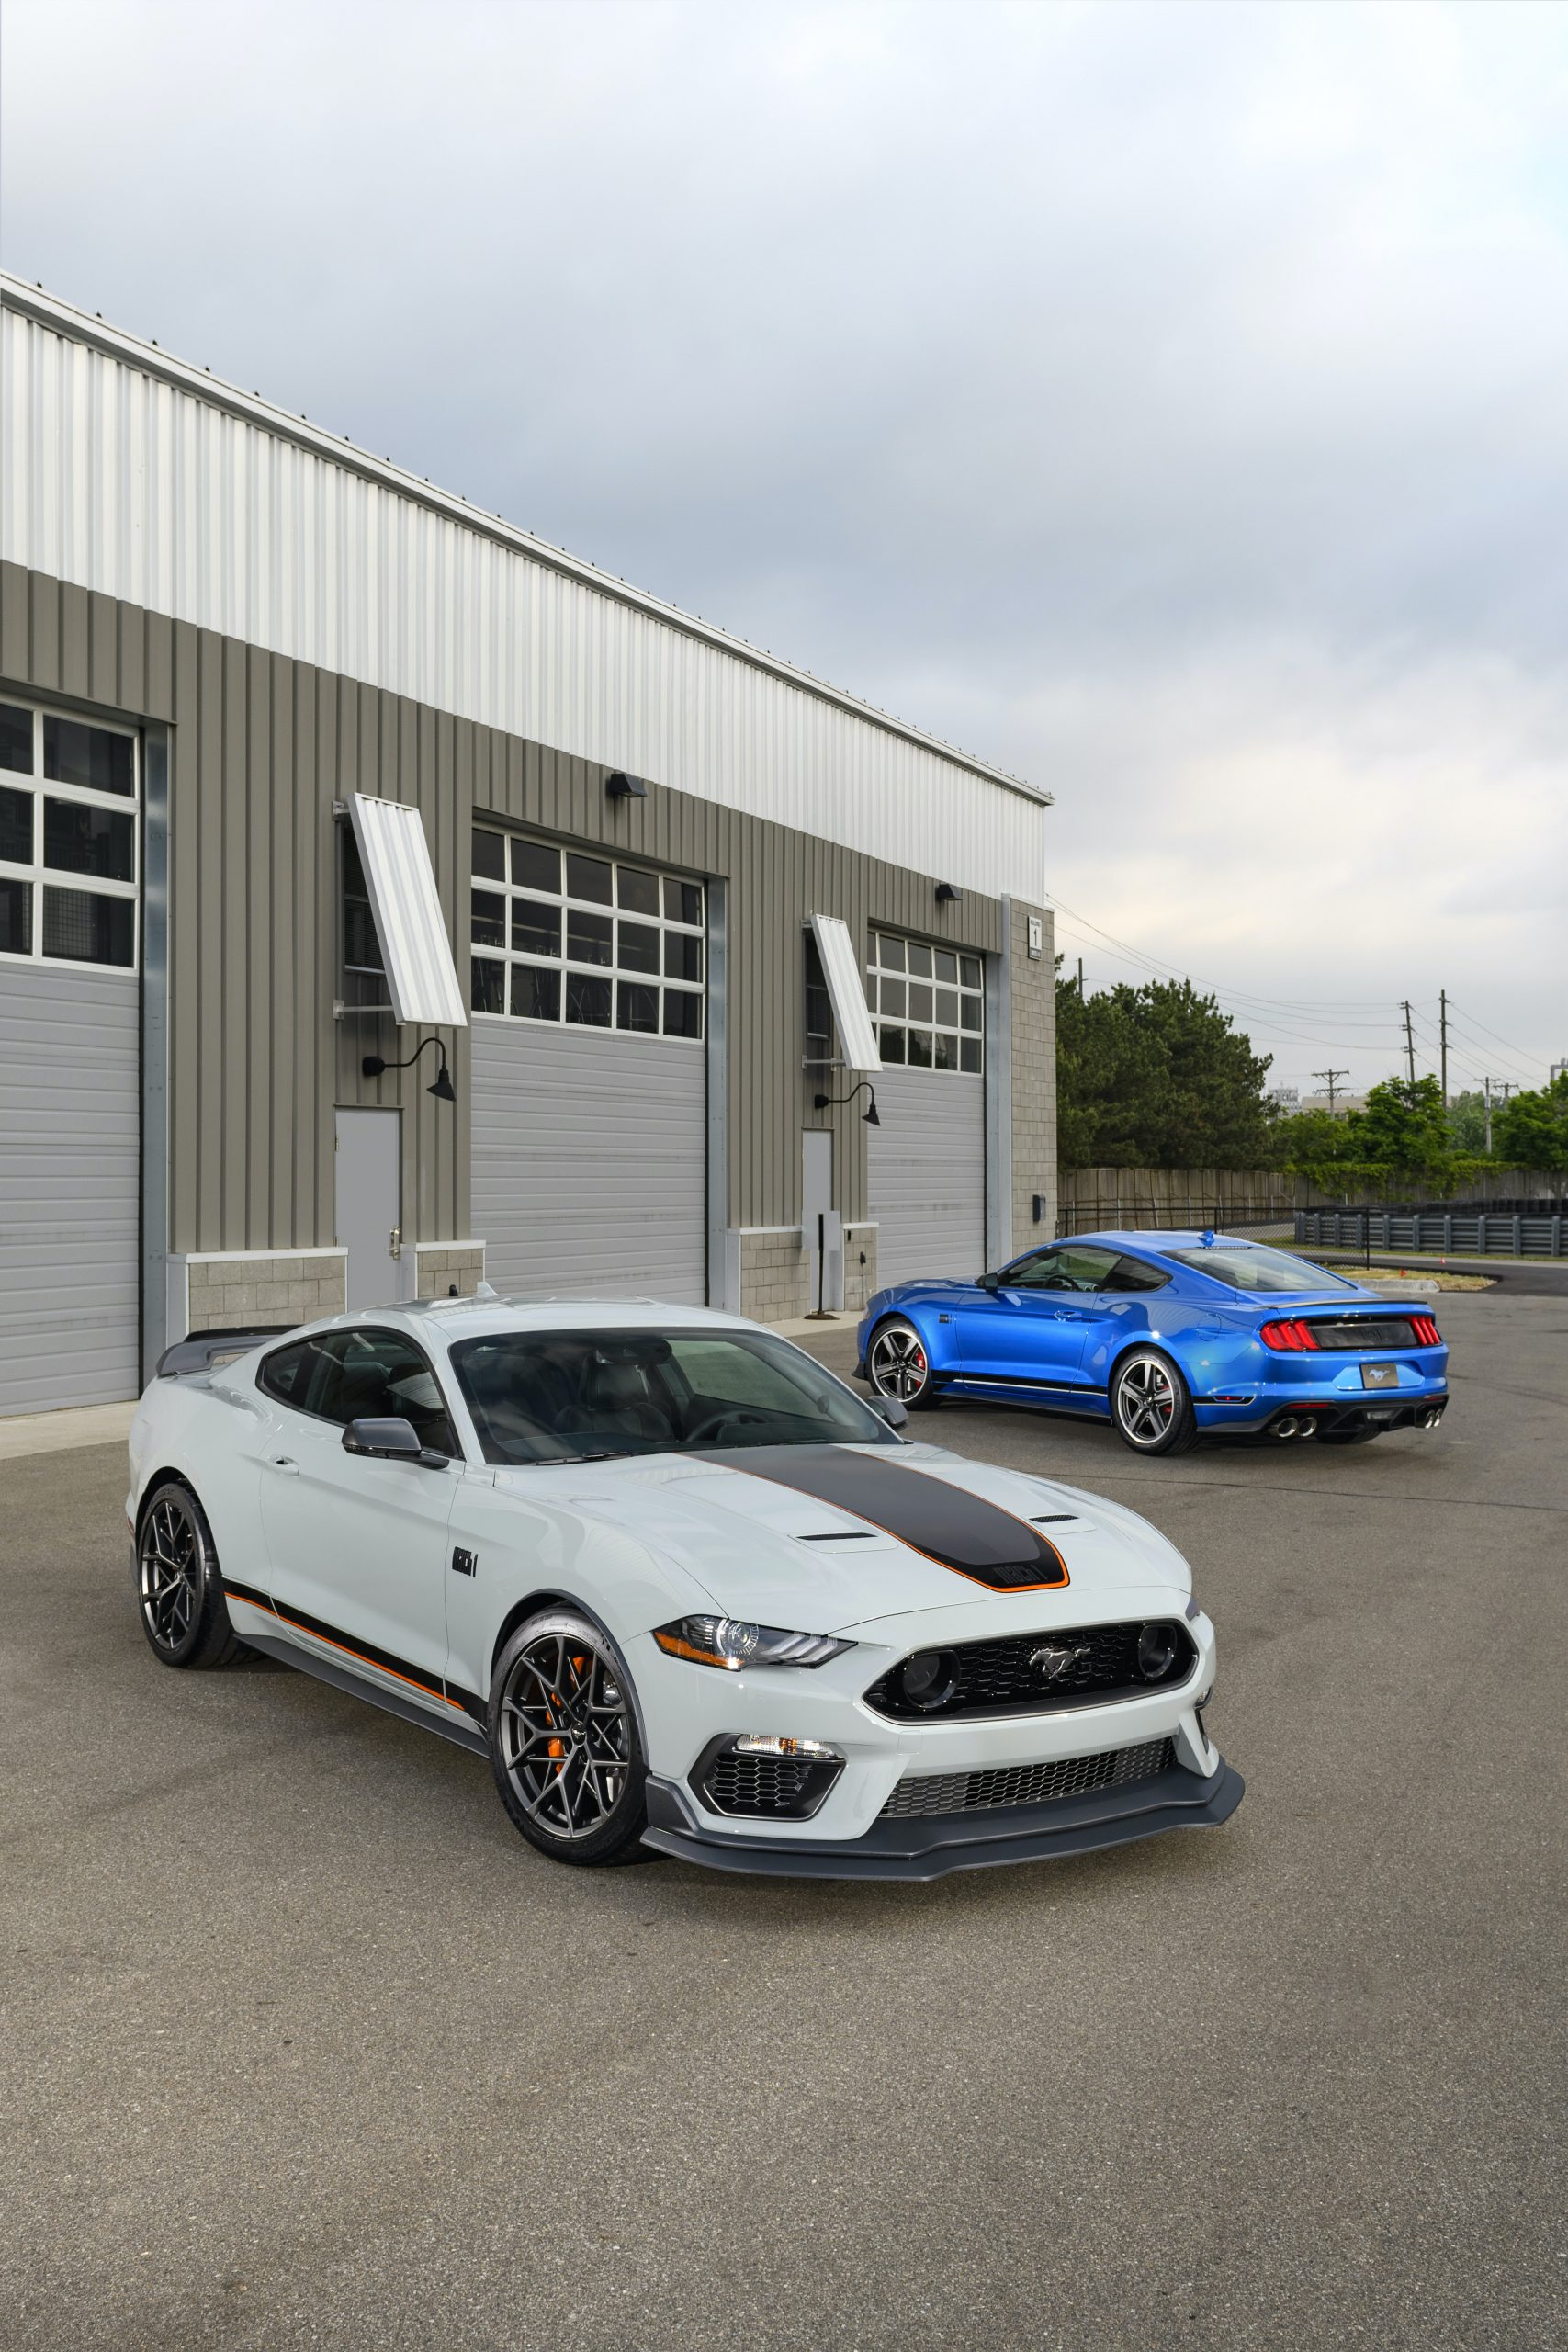 2021 Ford Mustang Mach 1 Cars Vertical